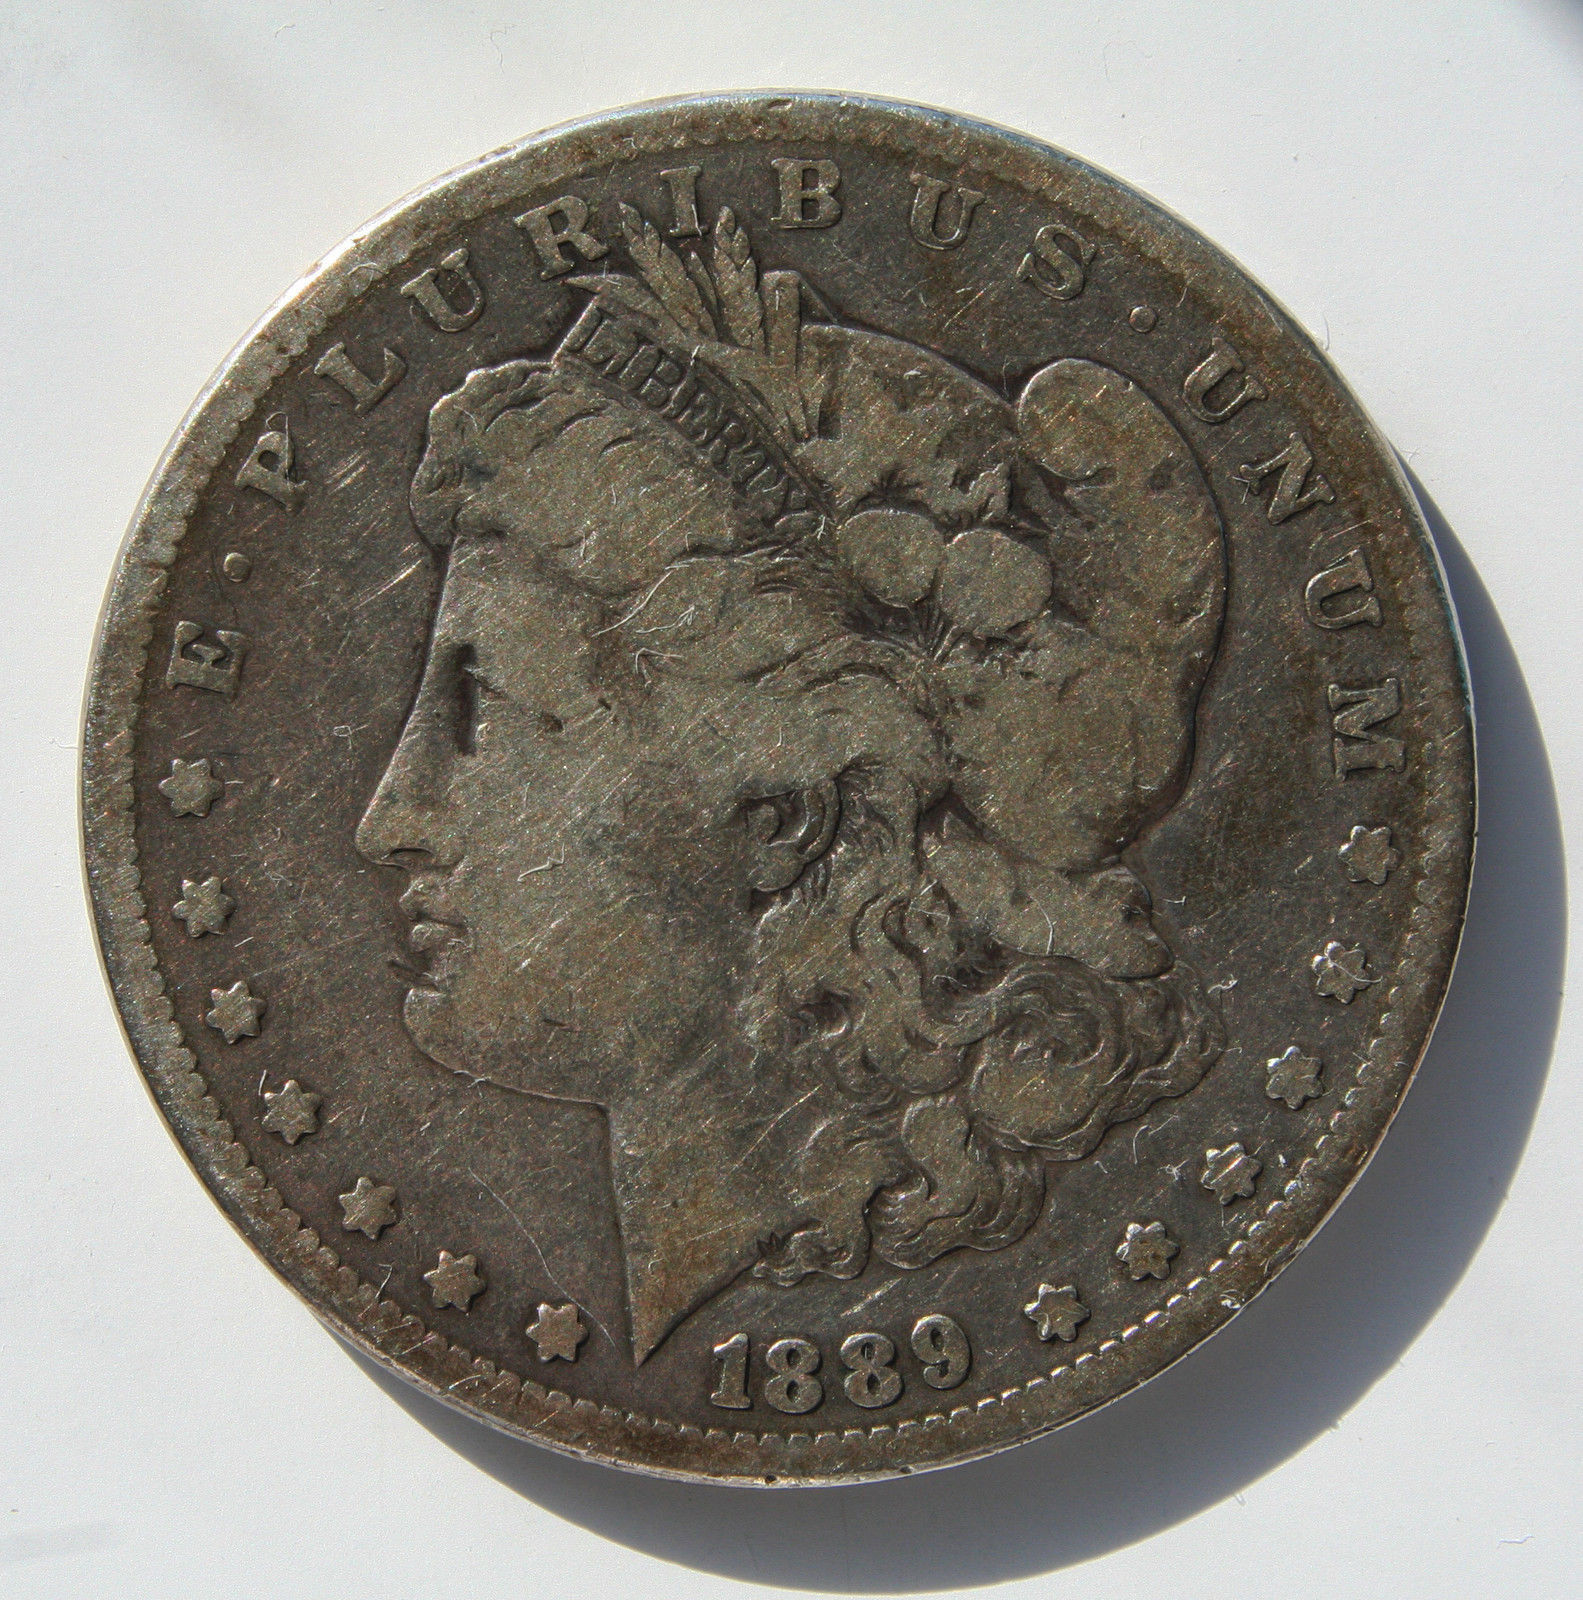 1889CC Carson City MORGAN SILVER ONE DOLLAR Coin Lot # MZ 3362